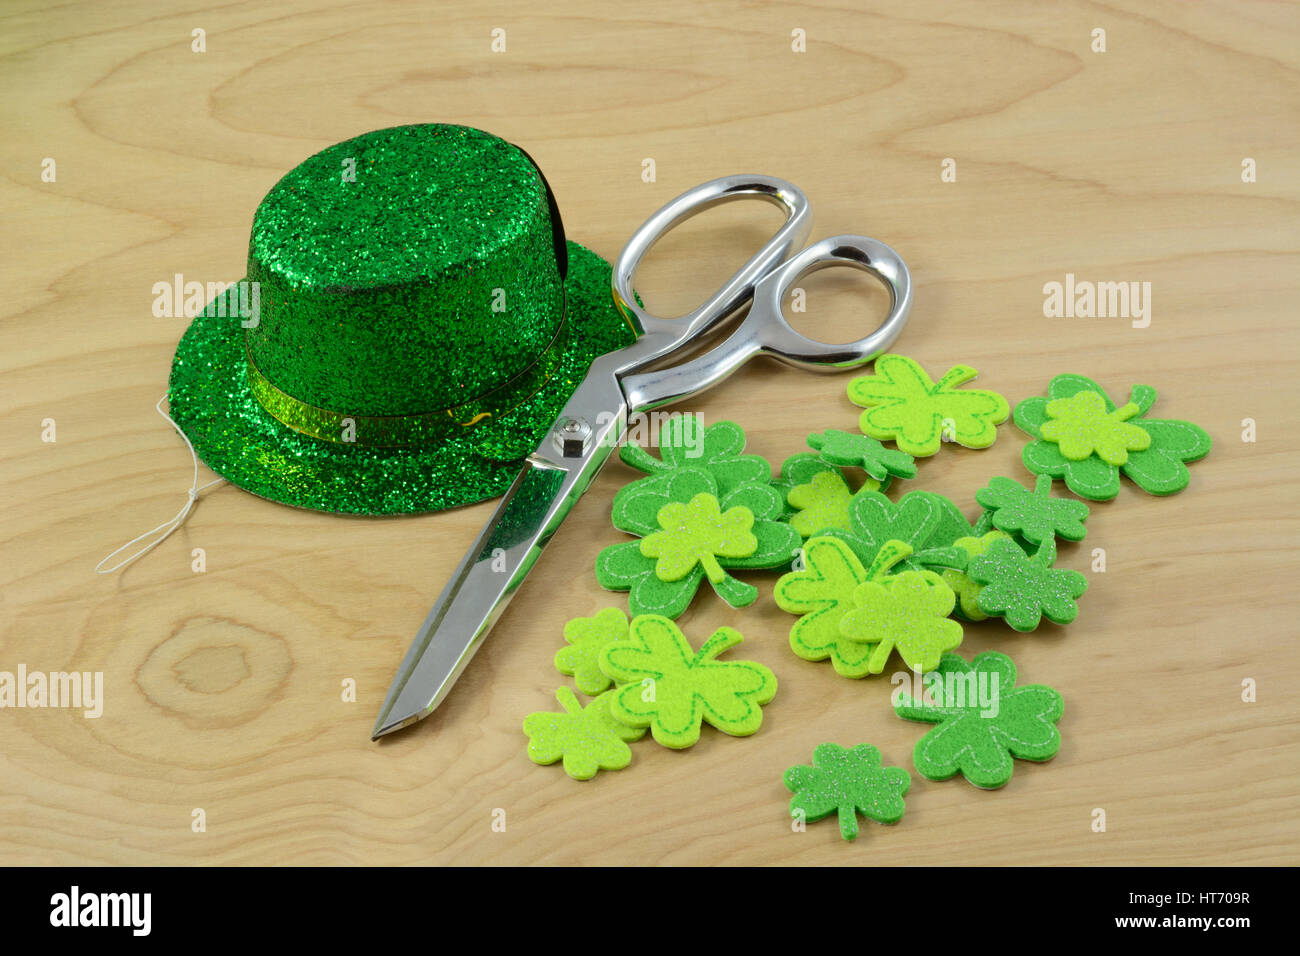 St. Patrick's Day crafting project with green hat and shamrocks and scissors Stock Photo